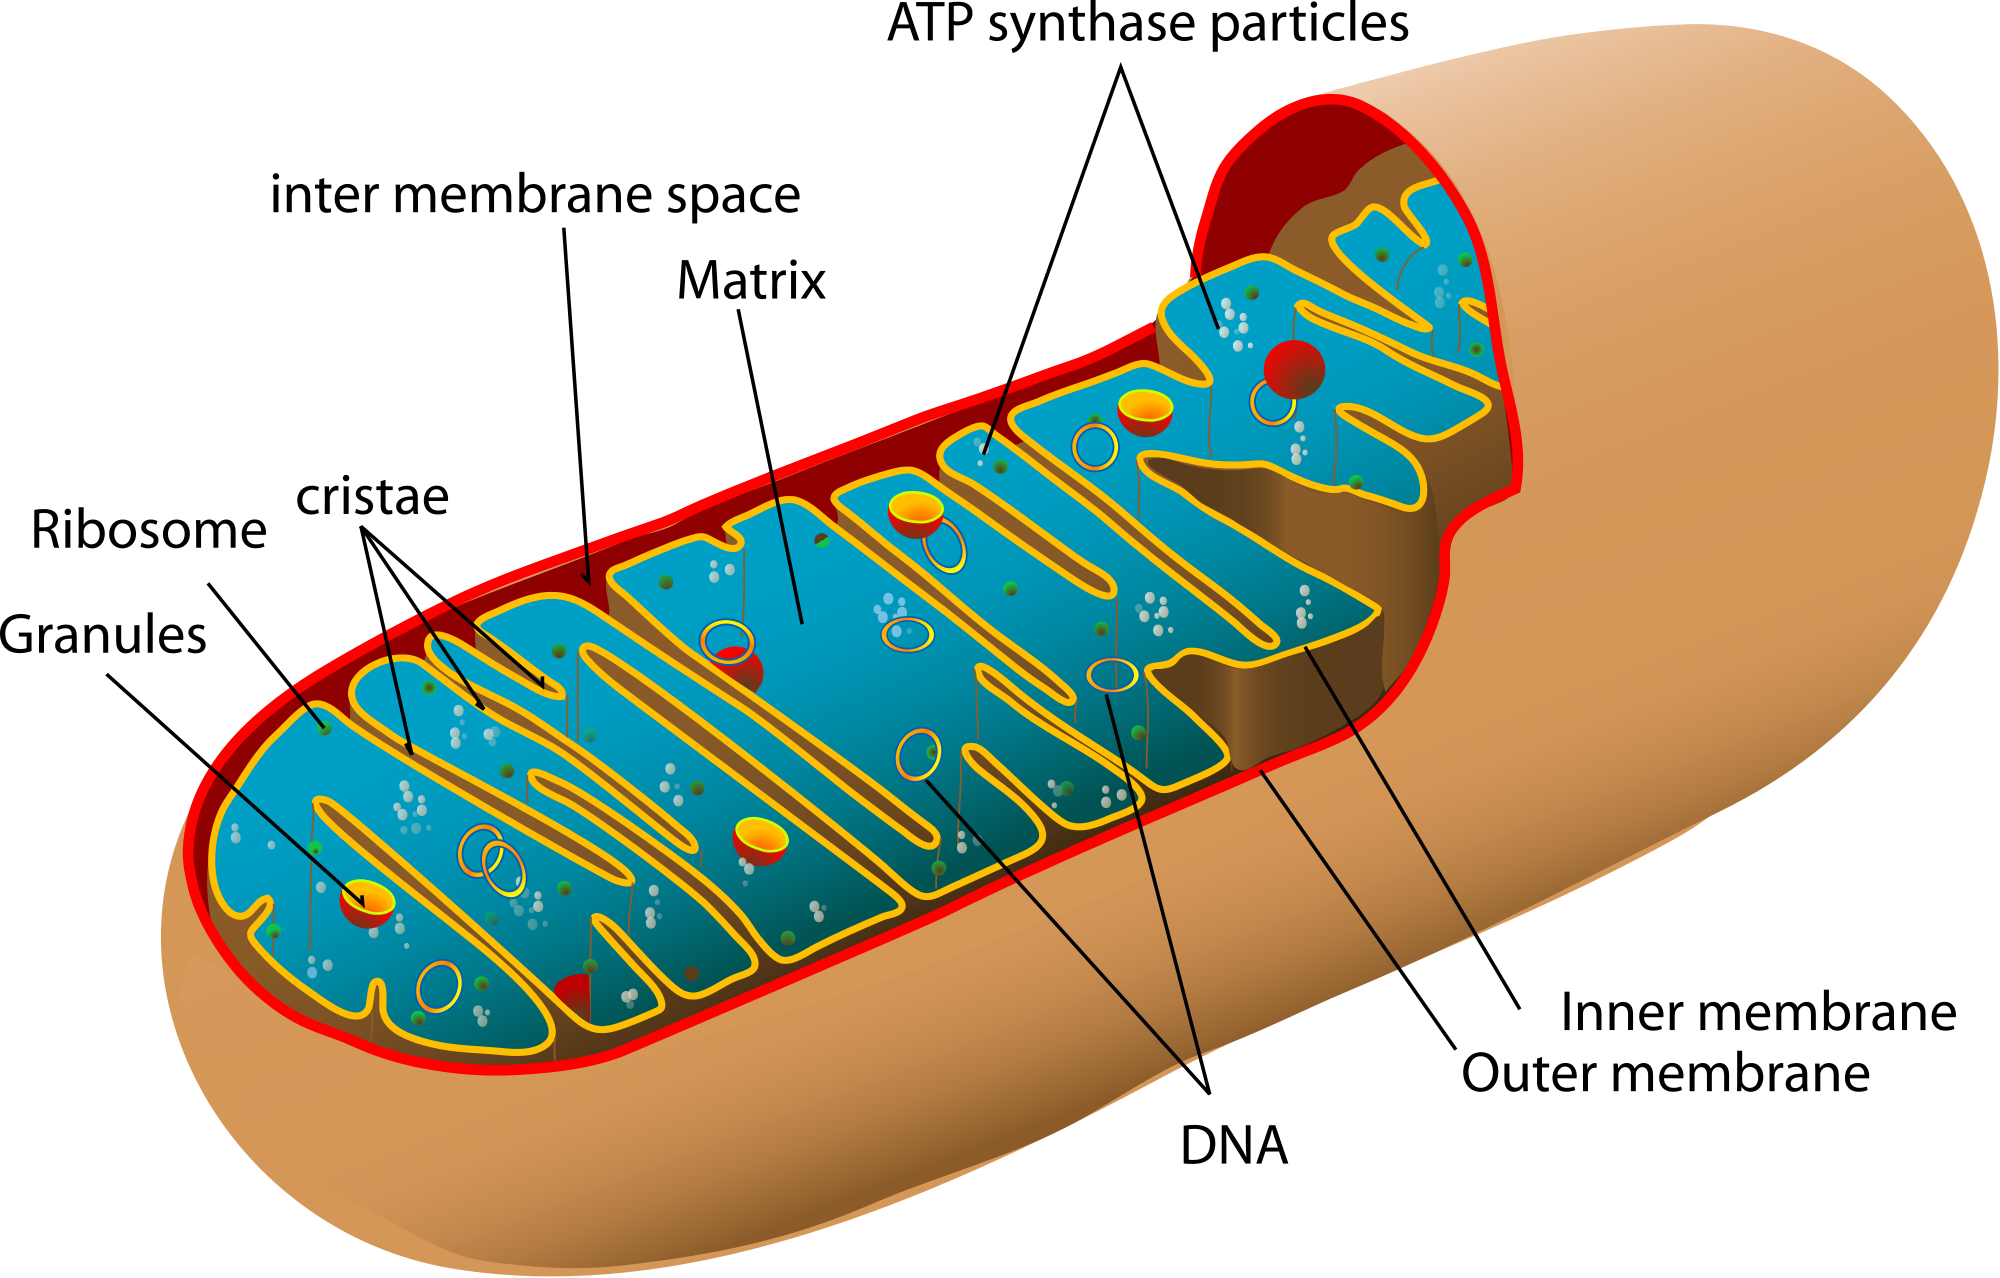 Mitochondrion diagram by Mariana Ruiz Villarreal